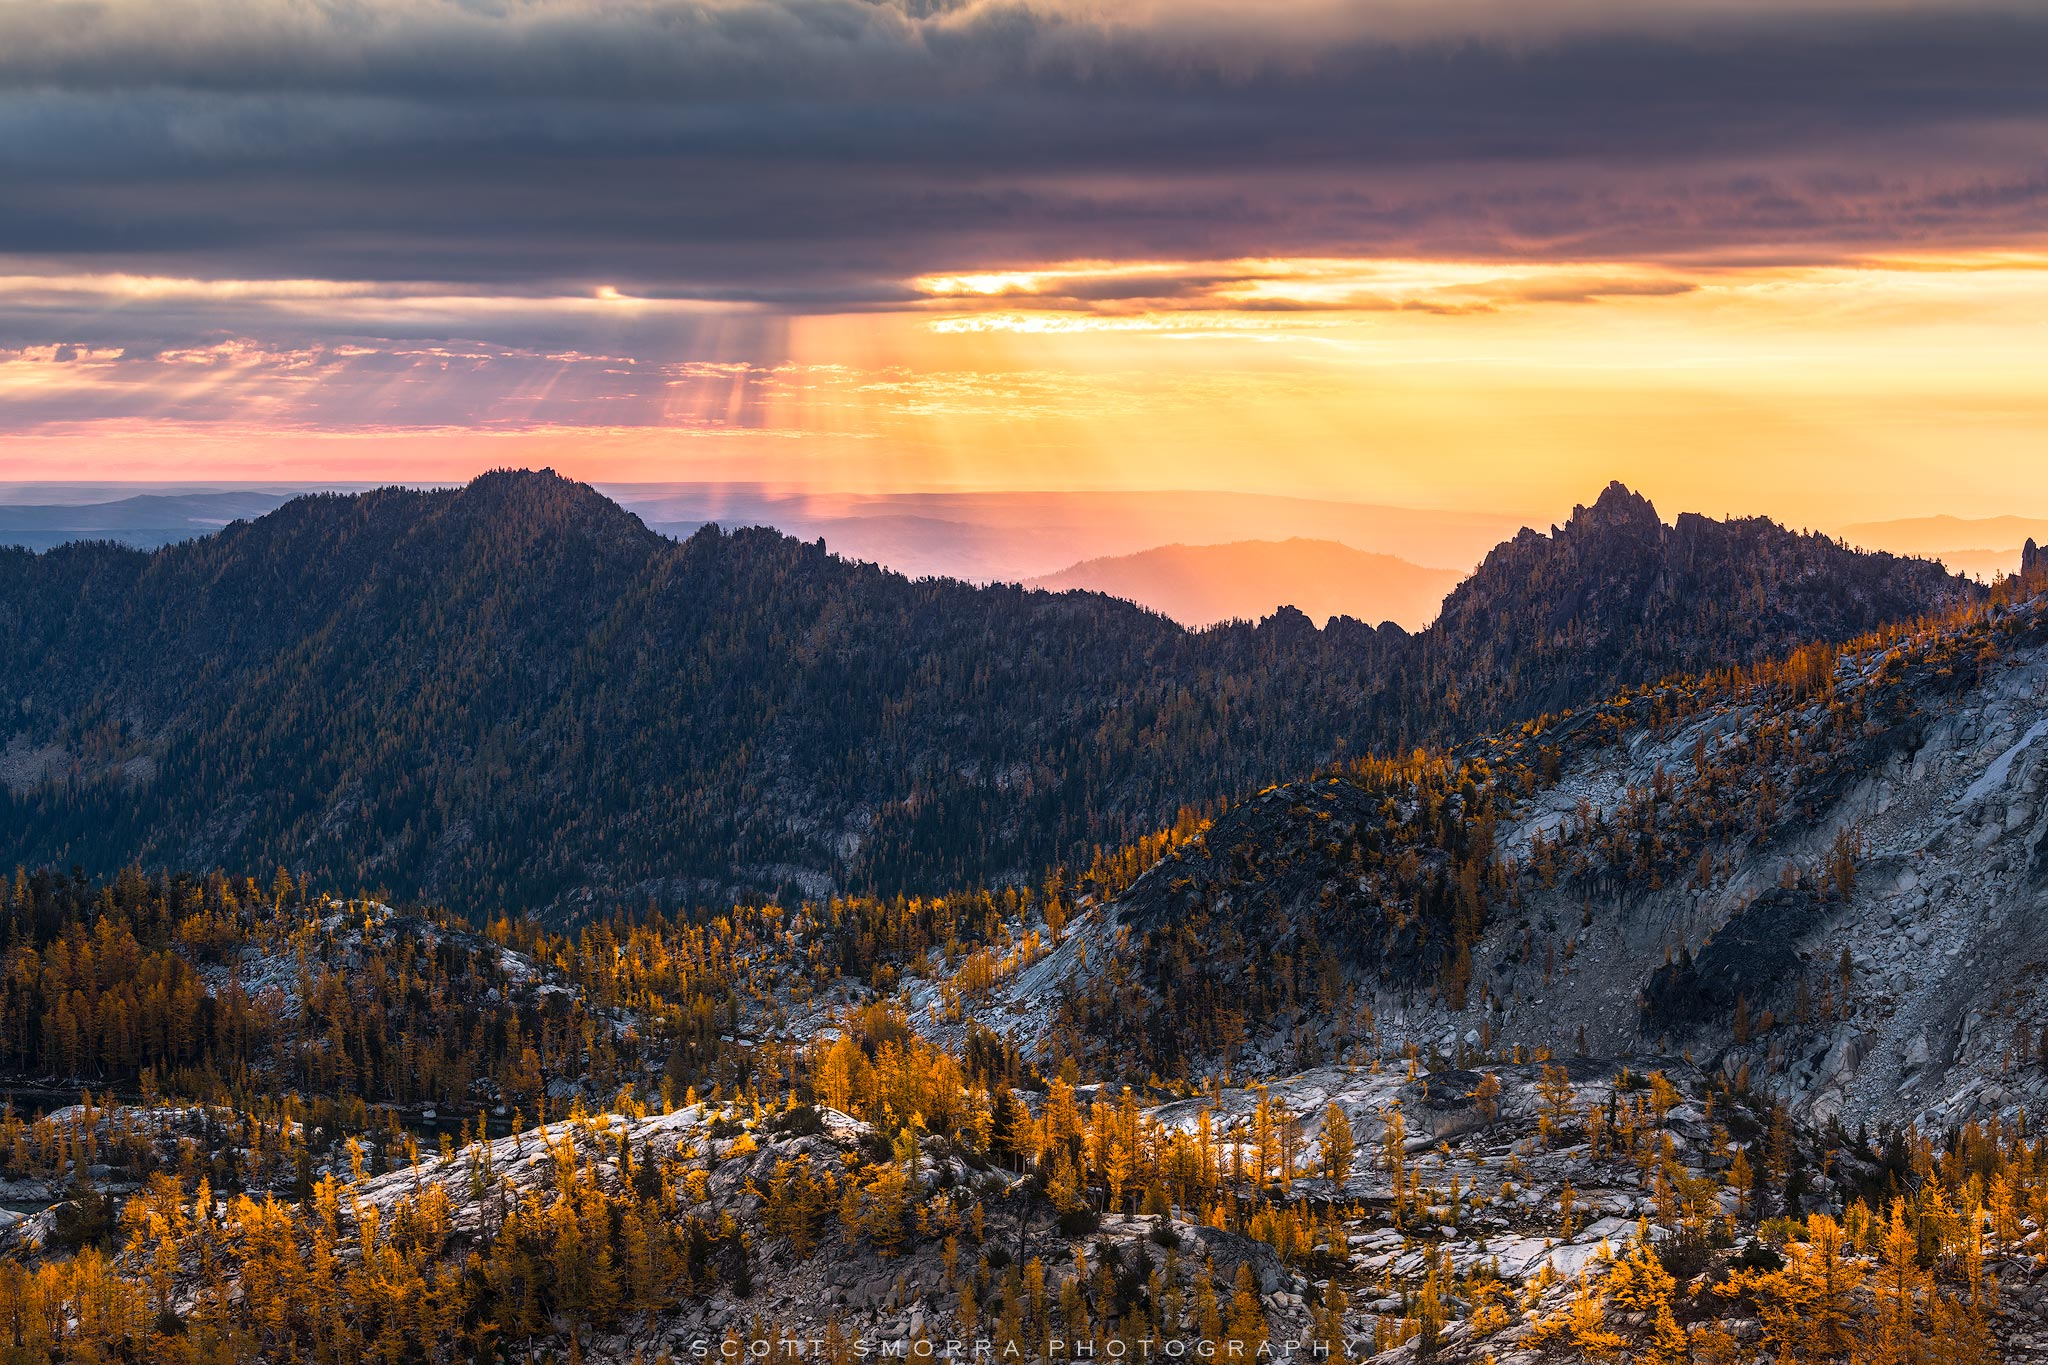 Fine Art Limited Edition of 25 - Sunrise light filtering down through mid level clouds in the Enchantments of the Washington...